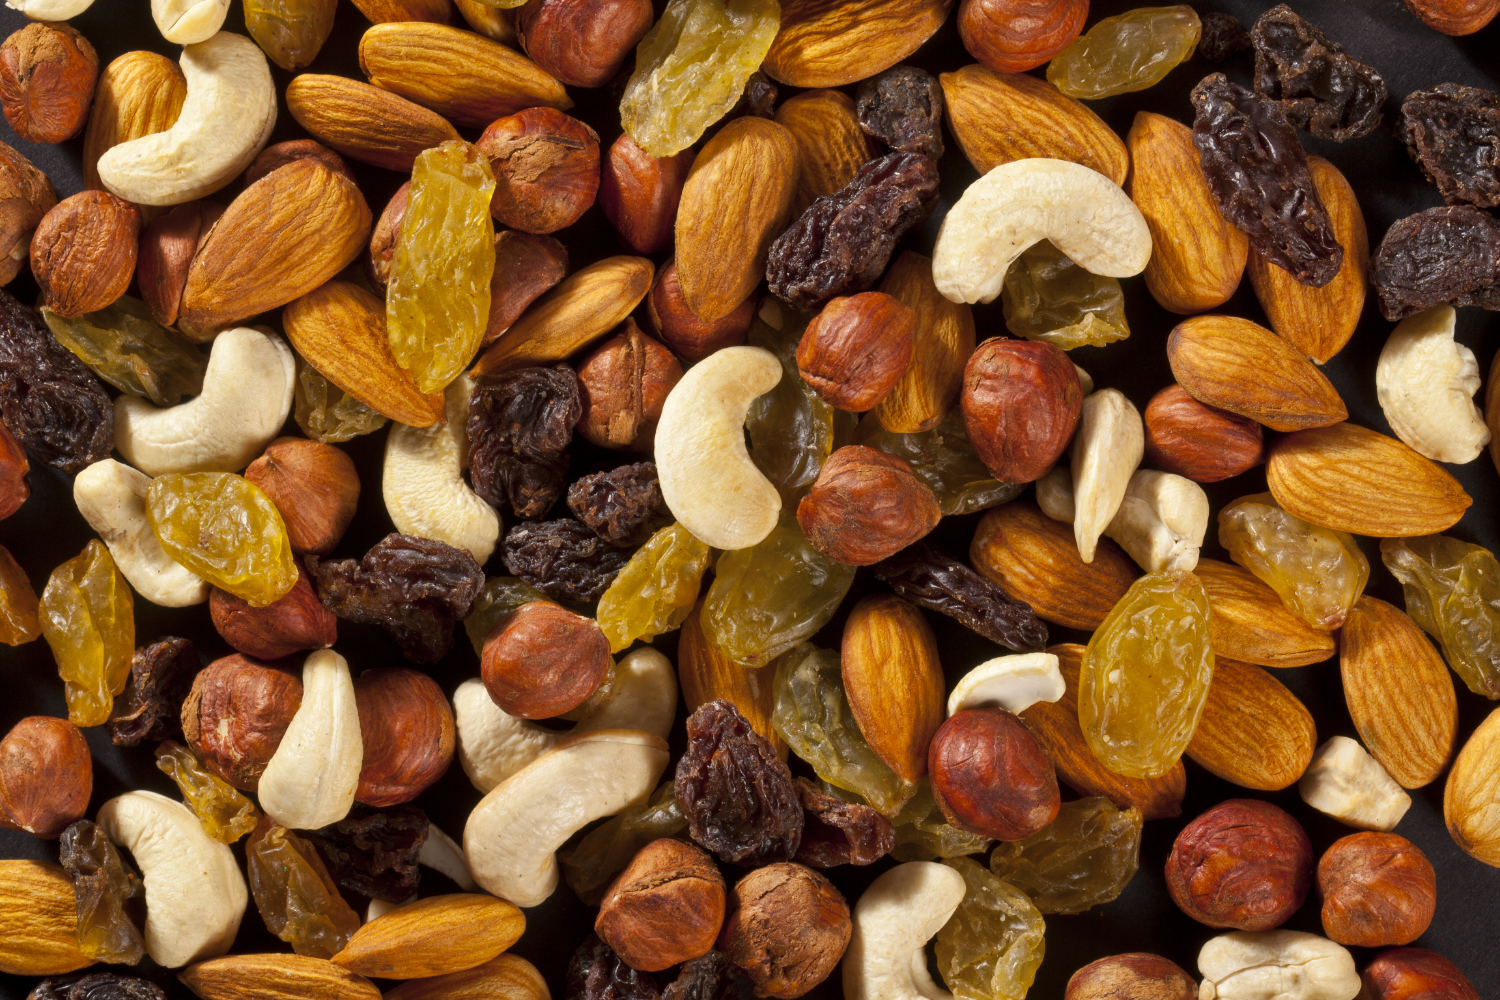 100% organic and high quality at best price pistachios, Almonds, cashew nuts